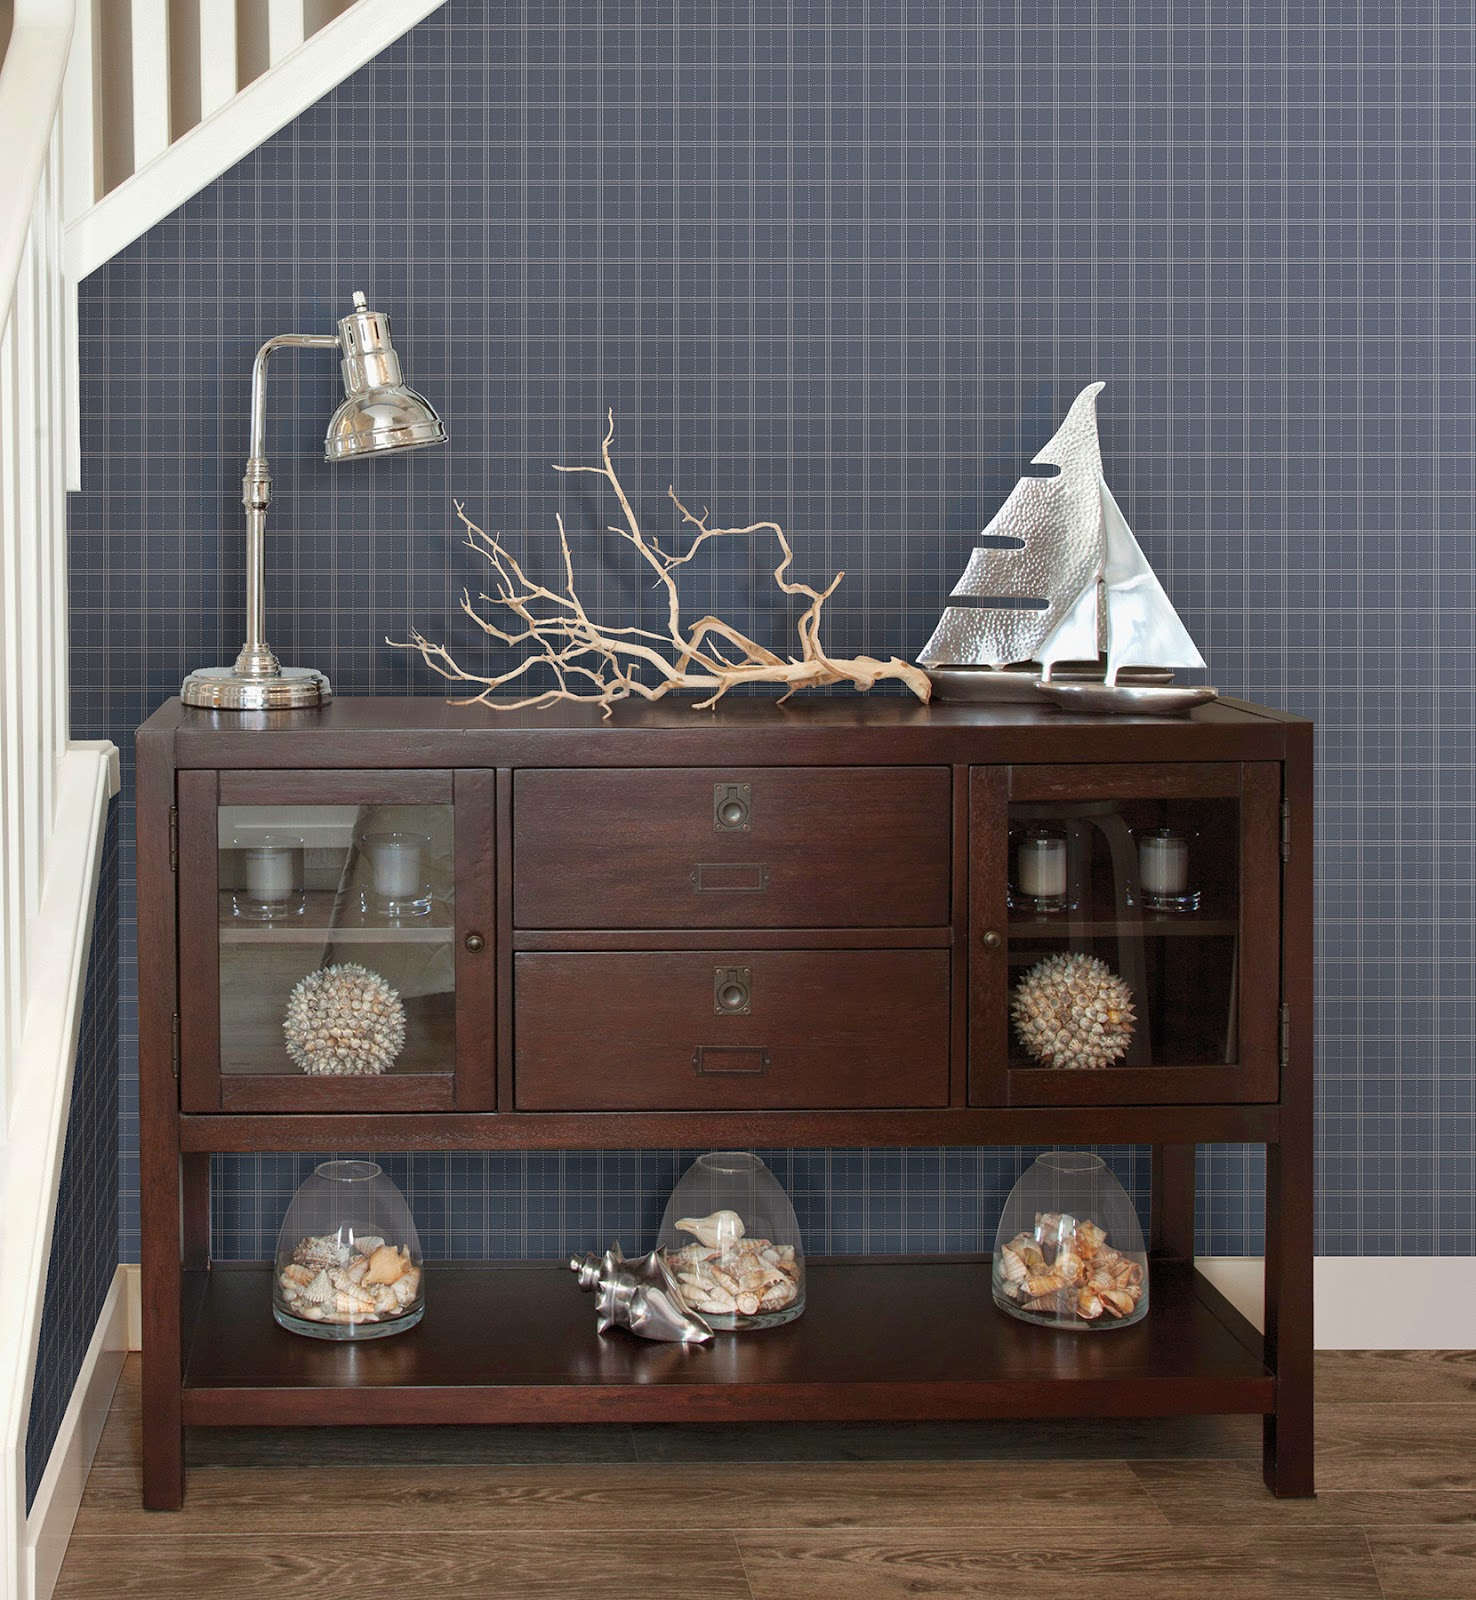 https://www.wallcoveringsforless.com/shoppingcart/prodlist1.CFM?page=_prod_detail.cfm&product_id=45064&startrow=13&search=oxford&pagereturn=_search.cfm